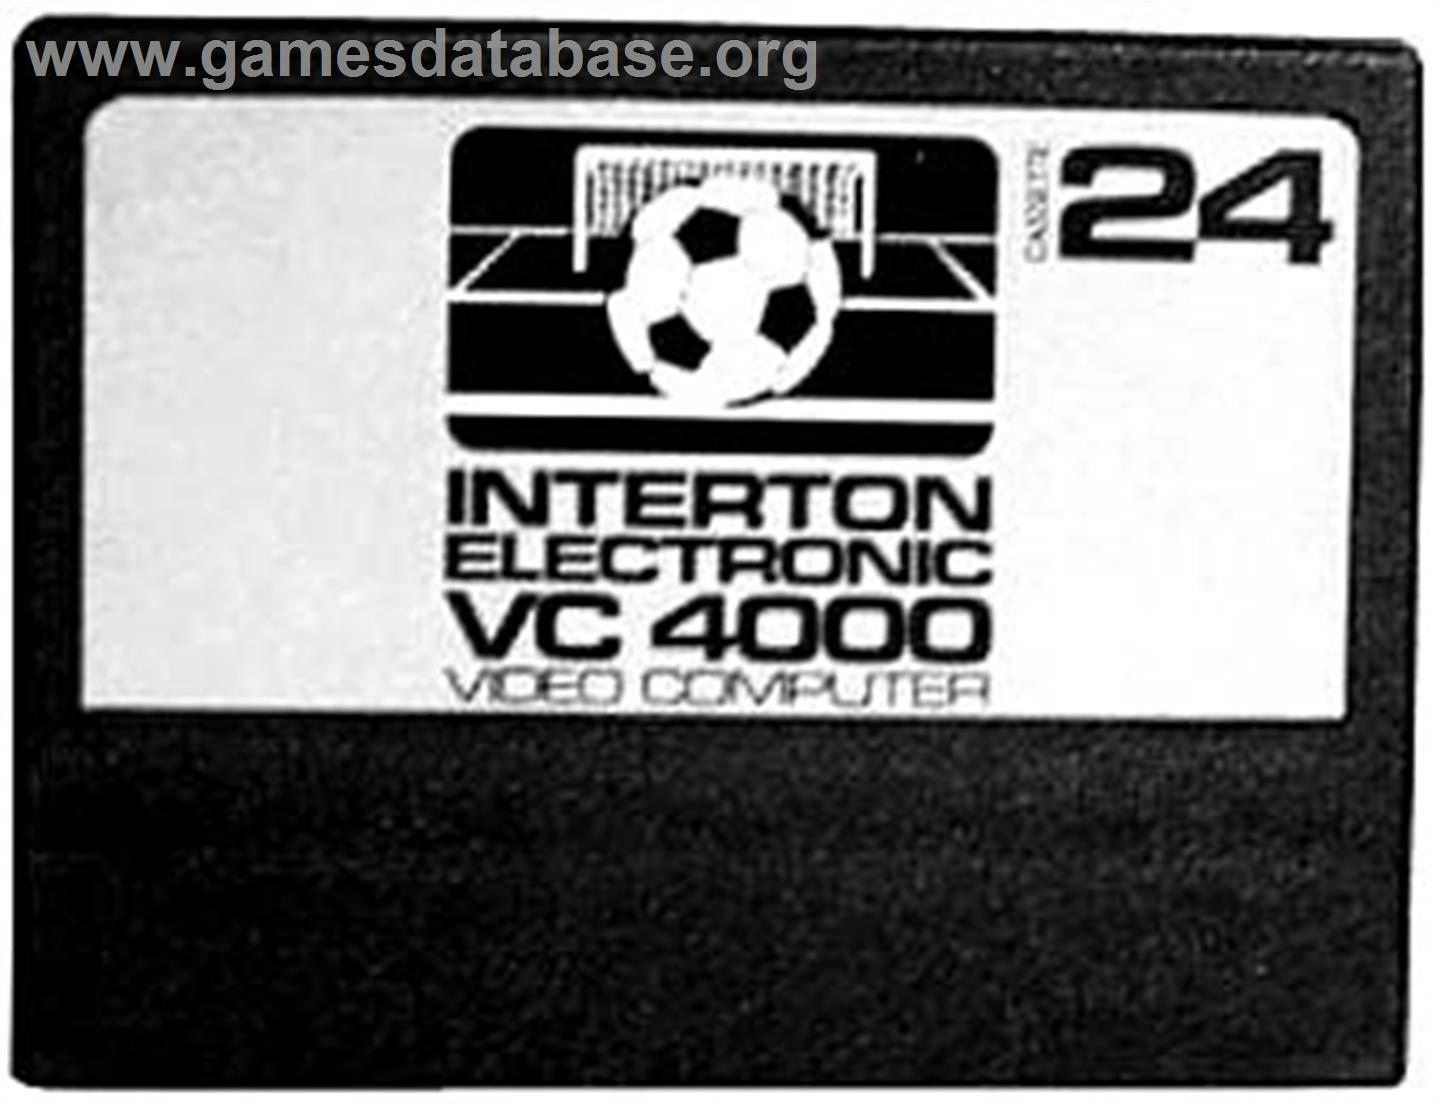 Soccer - Interton VC 4000 - Artwork - Cartridge